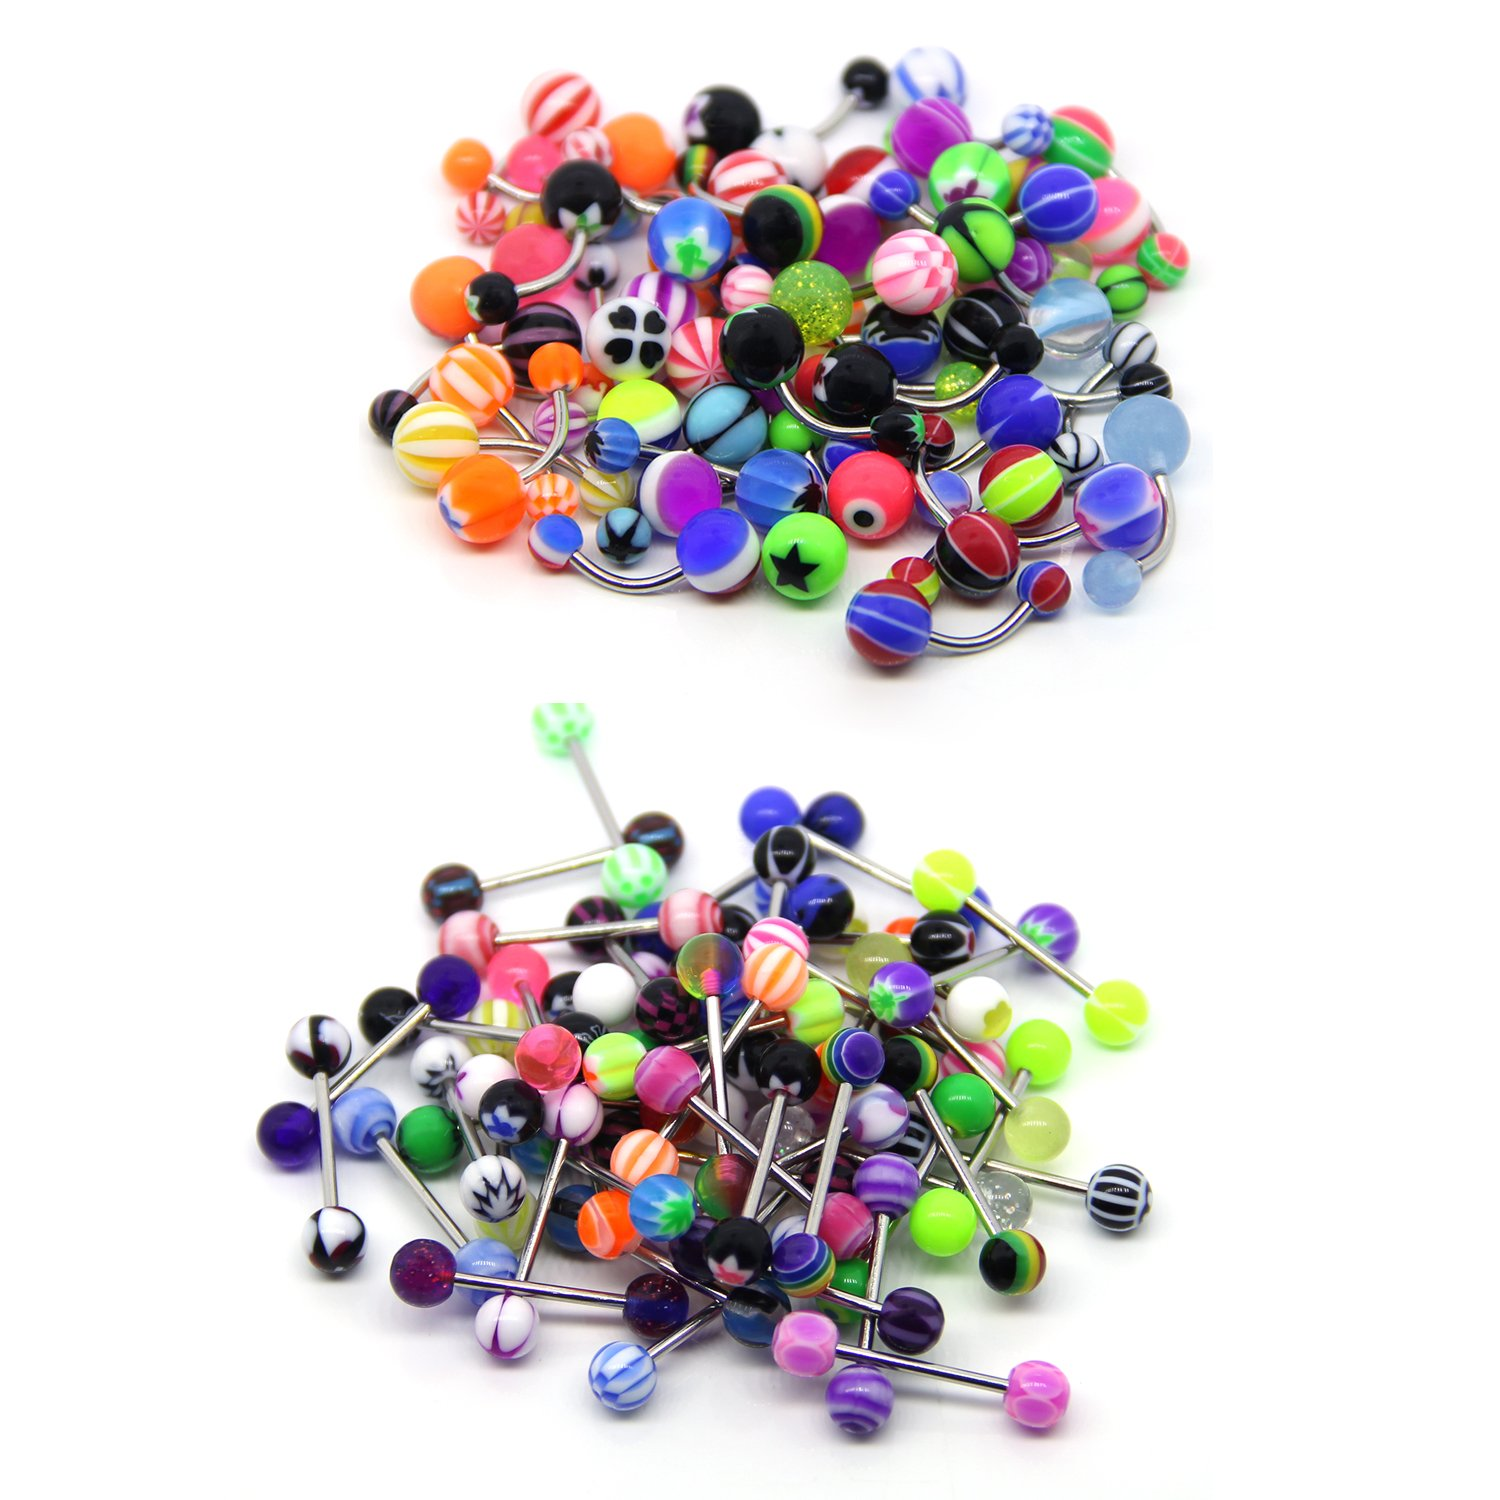 Coolrunner 100 Mix Pack 50Pc 14G Belly Button Rings and 50Pc 14G Tongue Ring Barbells Kit BGHS